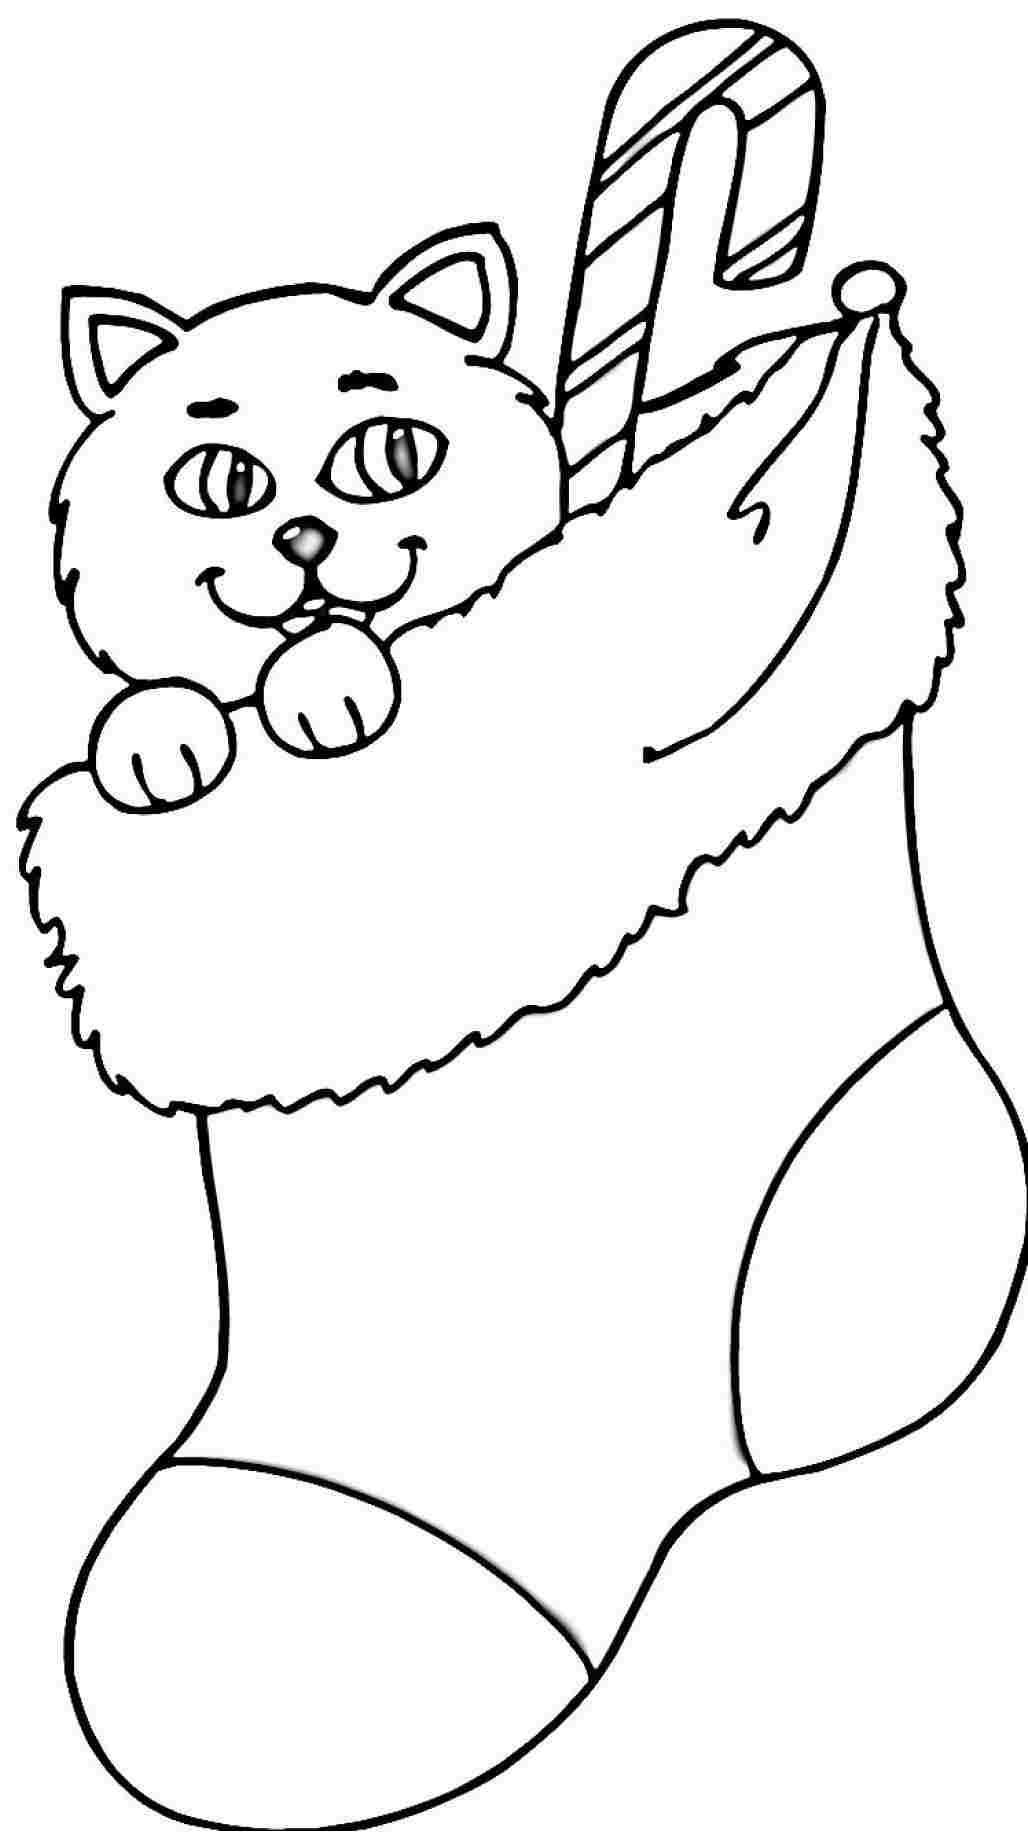 christmas stocking coloring pages christmas stocking coloring page for kids christmas coloring pages stocking